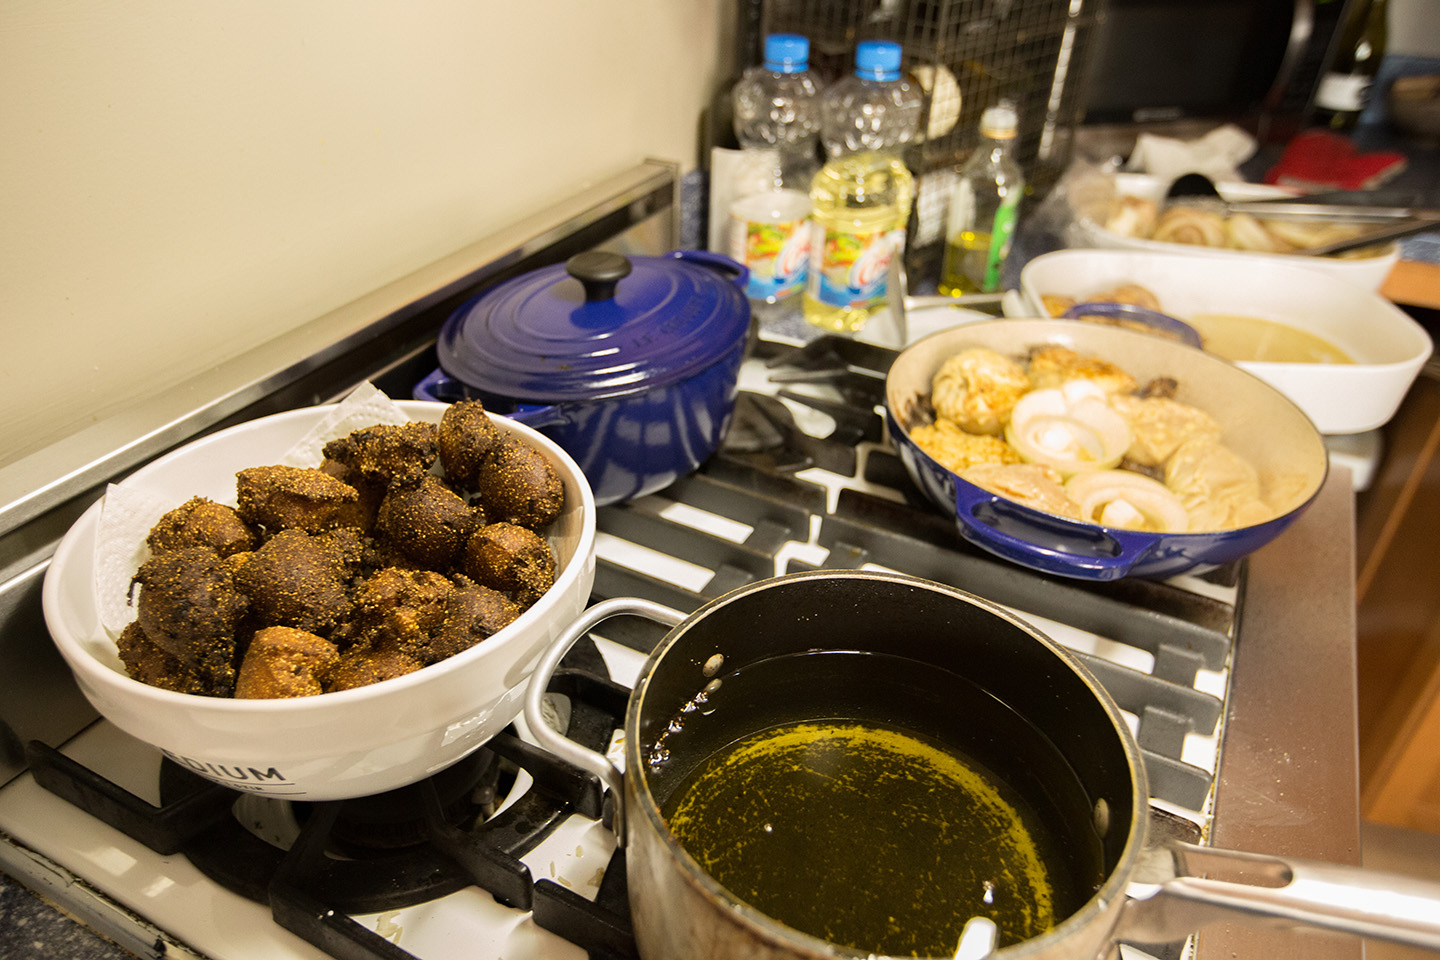 Hush Puppies and Cuban Chicken on the stove